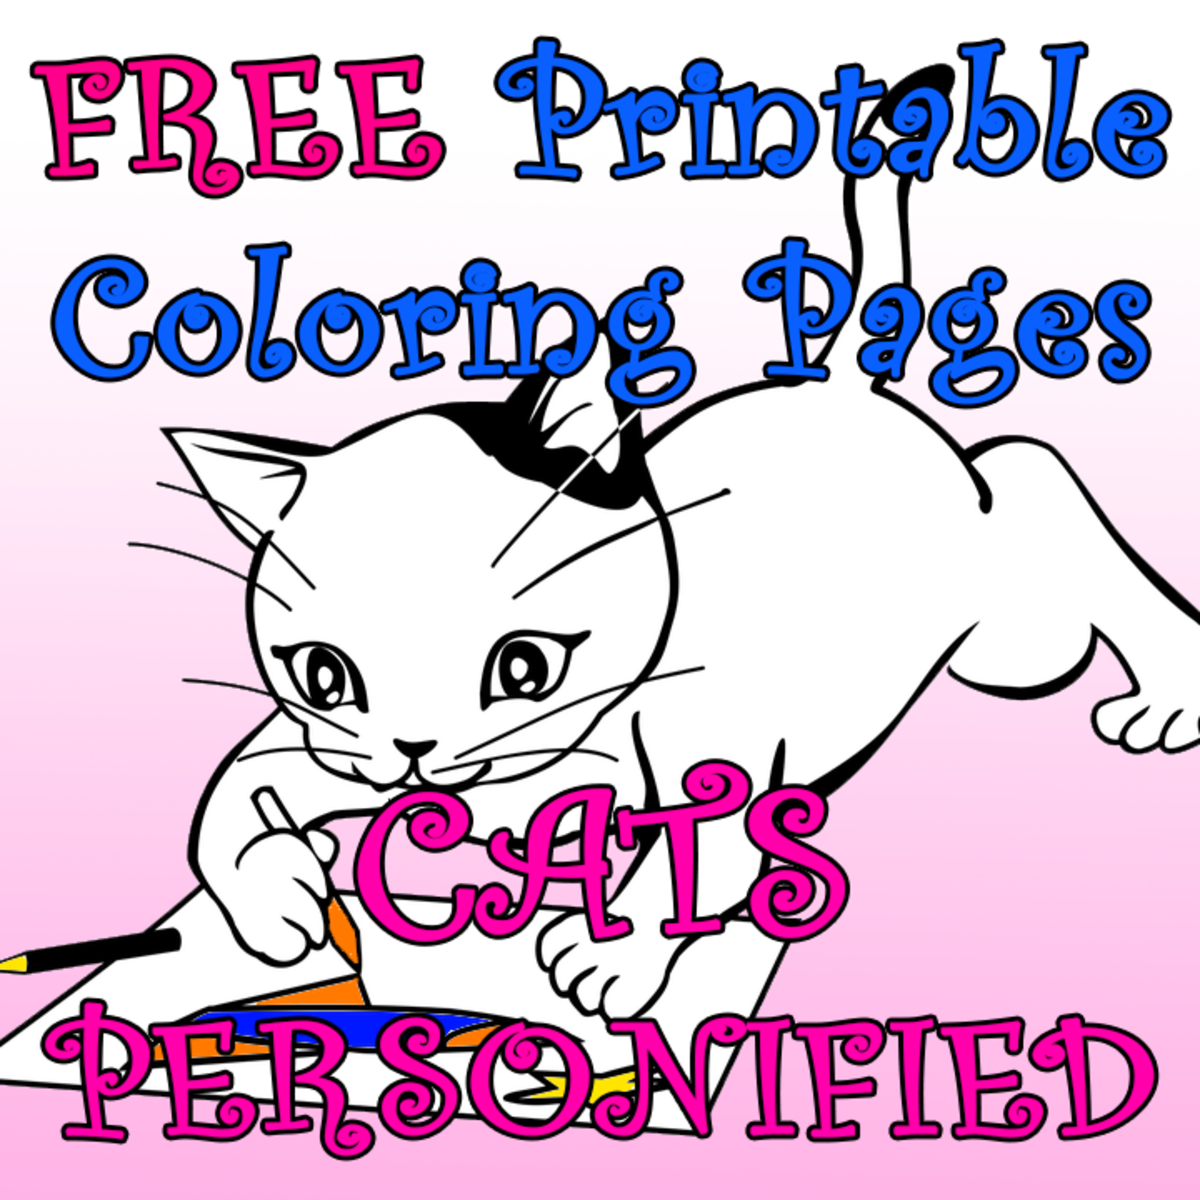 Cats Personified 10 Free Printable Coloring Pages For Kids